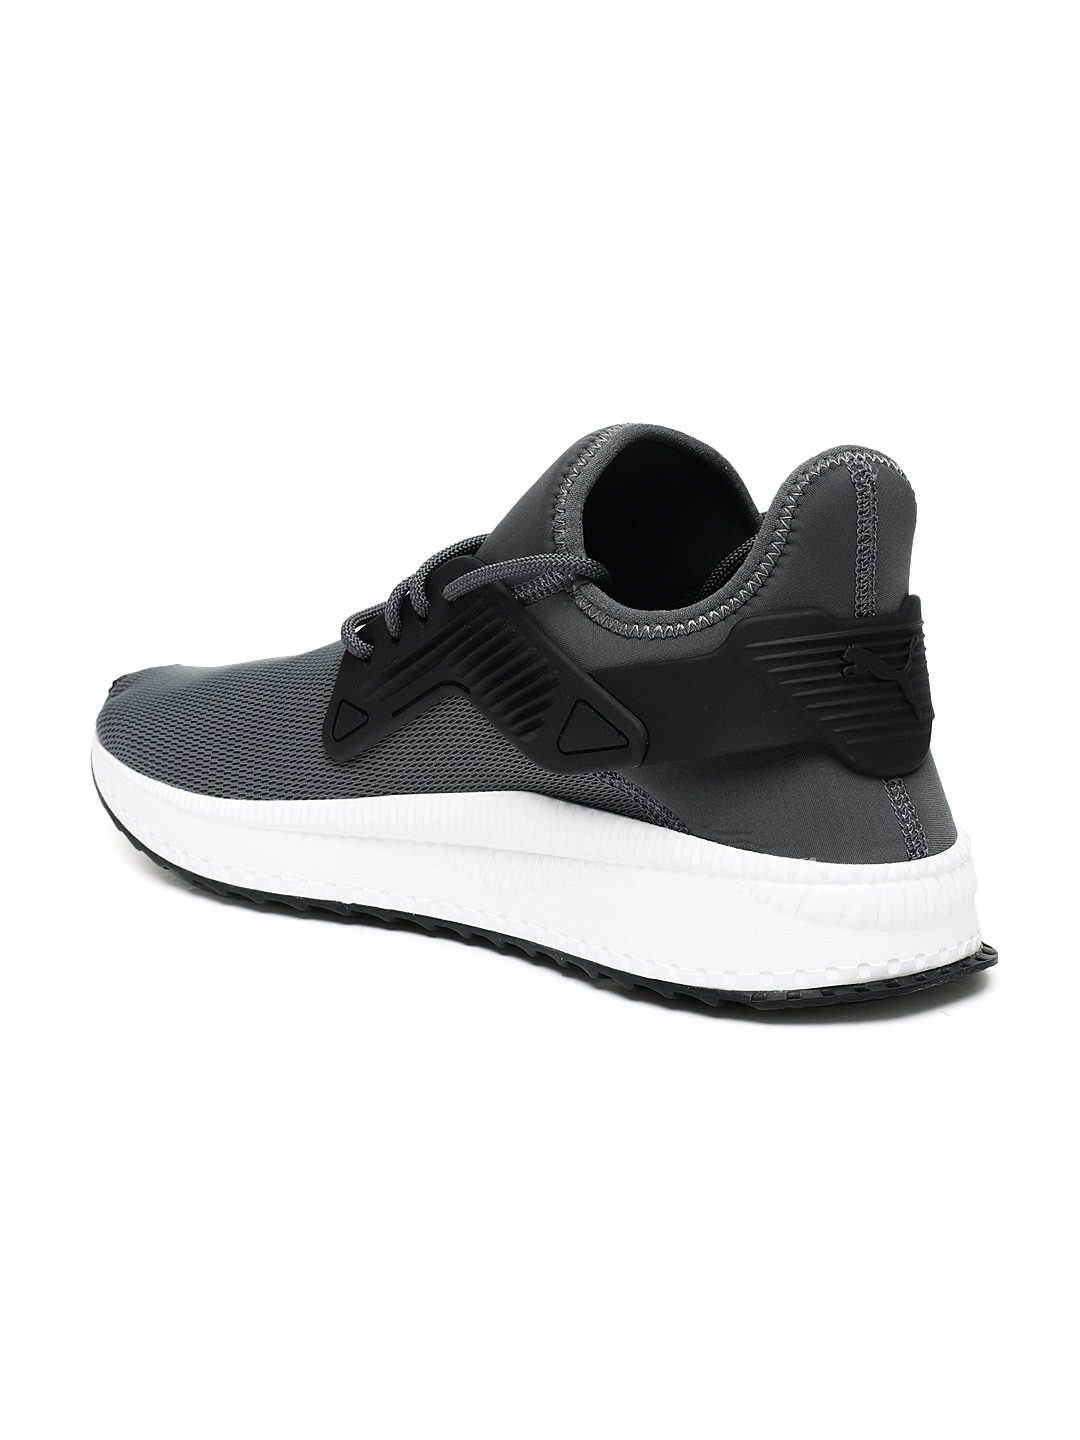 Buy Puma Men TSUGI Cage Grey Casual Shoes - Casual Shoes for Men ... 65a4b8172